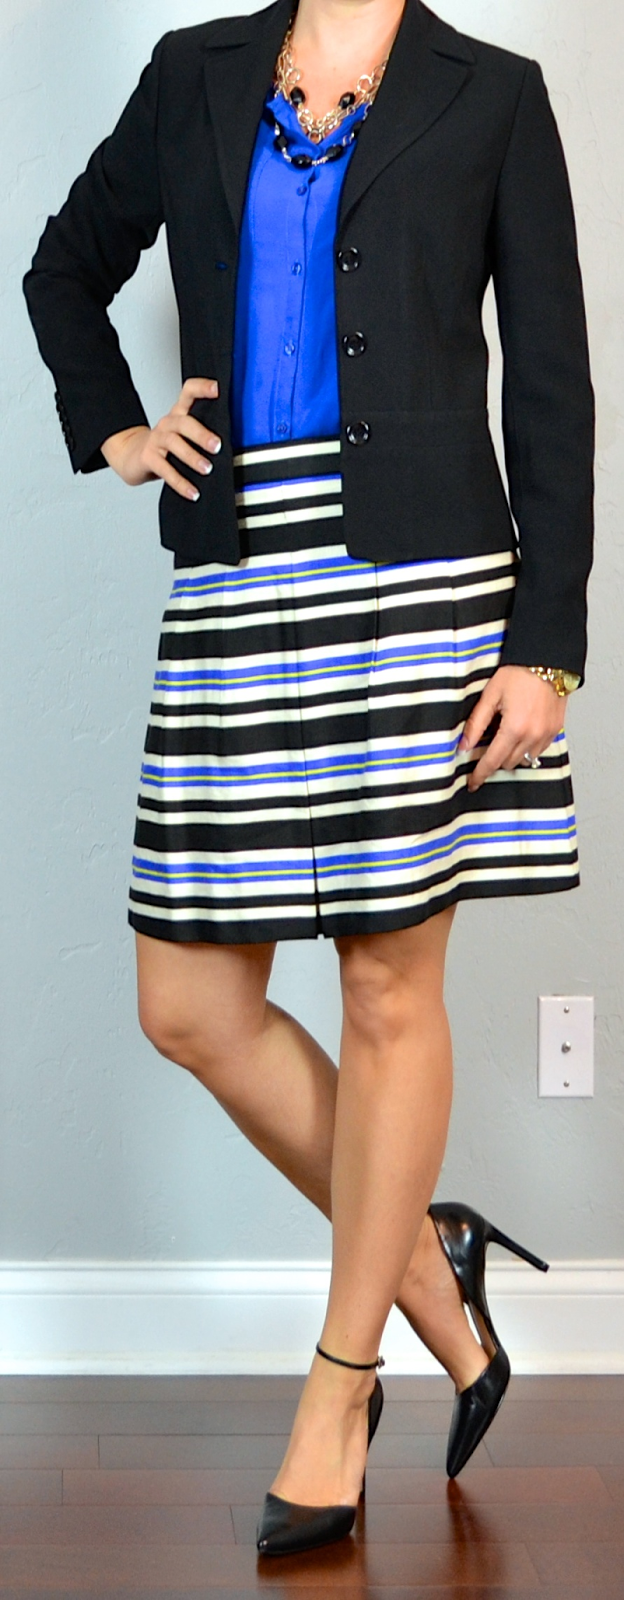 Tibi stripe skirt and red high heels. Find this Pin and more on My Style by Rosy 🌸. r/FrugalFemaleFashion - Help finding a full midi skirt like this fab Tibi one? Topshop's black and white stripe midi skirt is a near exact dupe of Tibi's similar stripe midi skirt from last season.